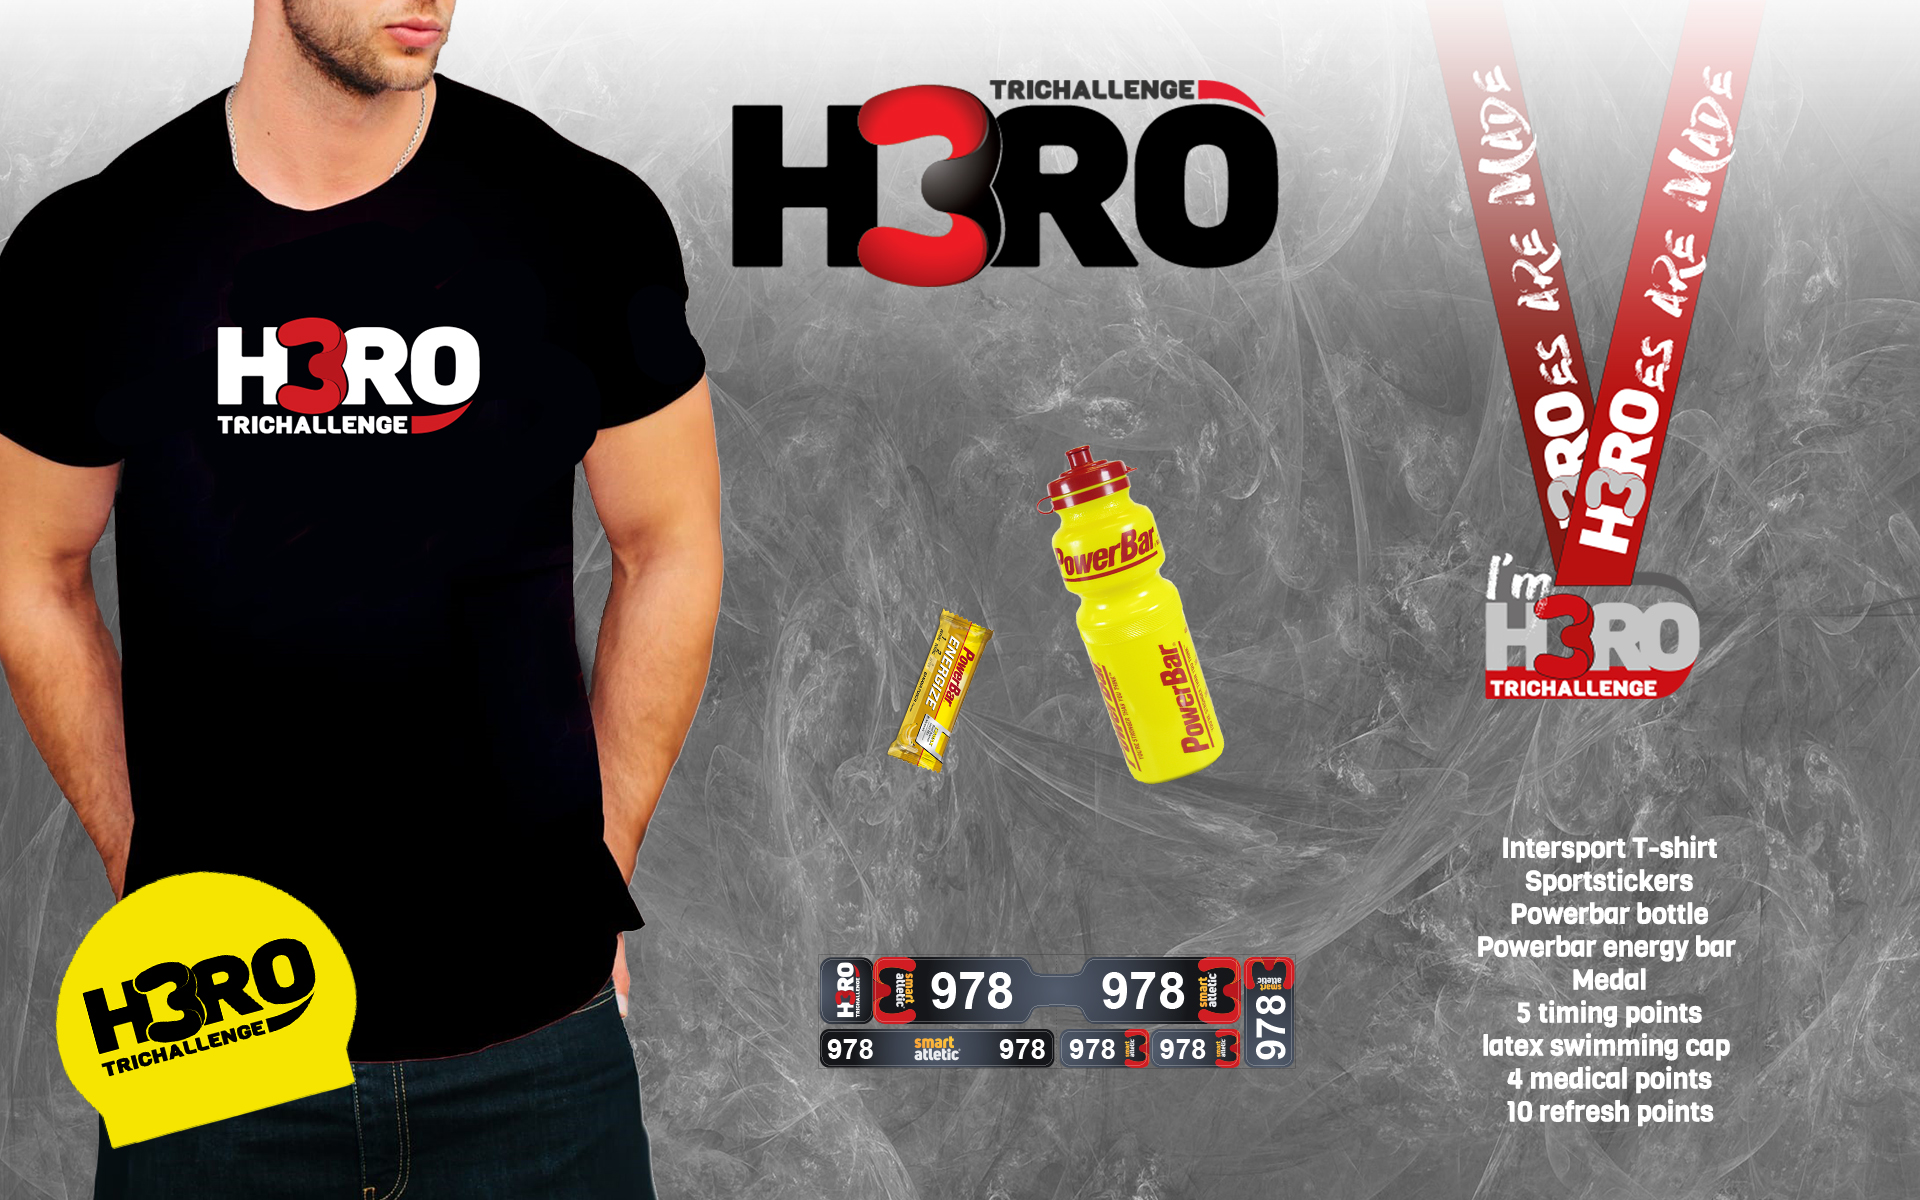 H3RO by TriChallenge 2019 - participant kit for Half